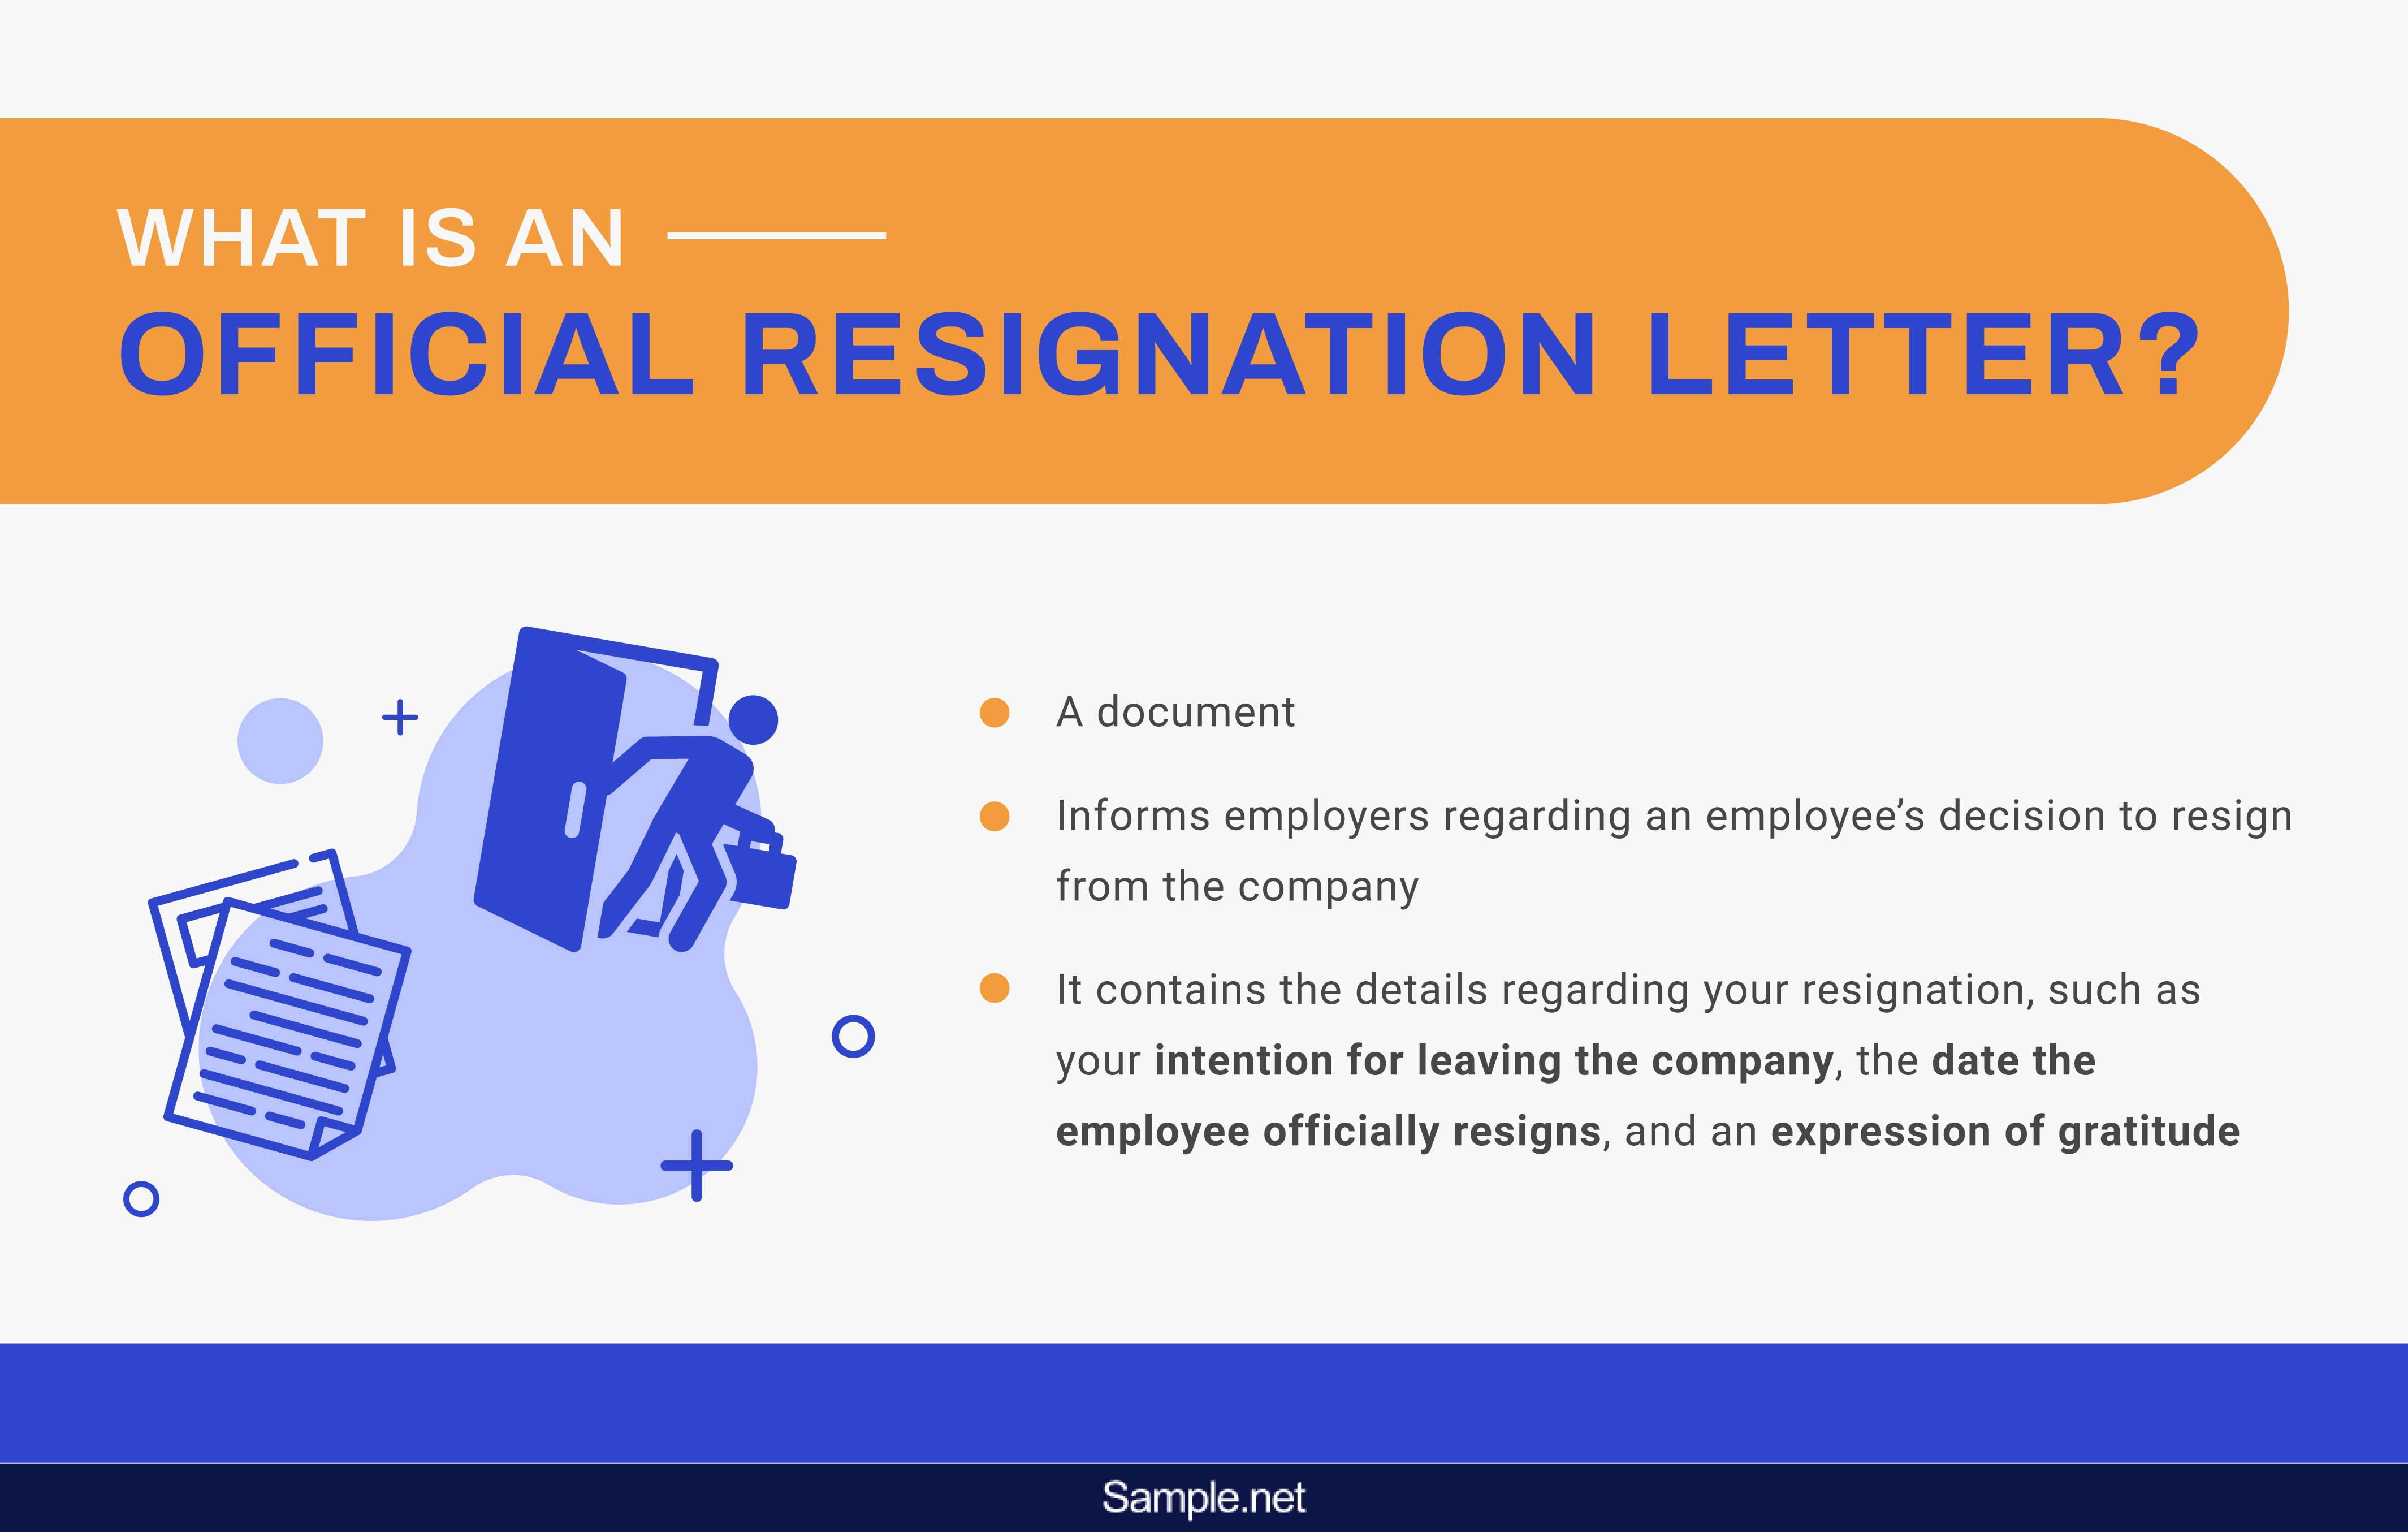 infographics-50-sample-official-resignation-letters-2a-01